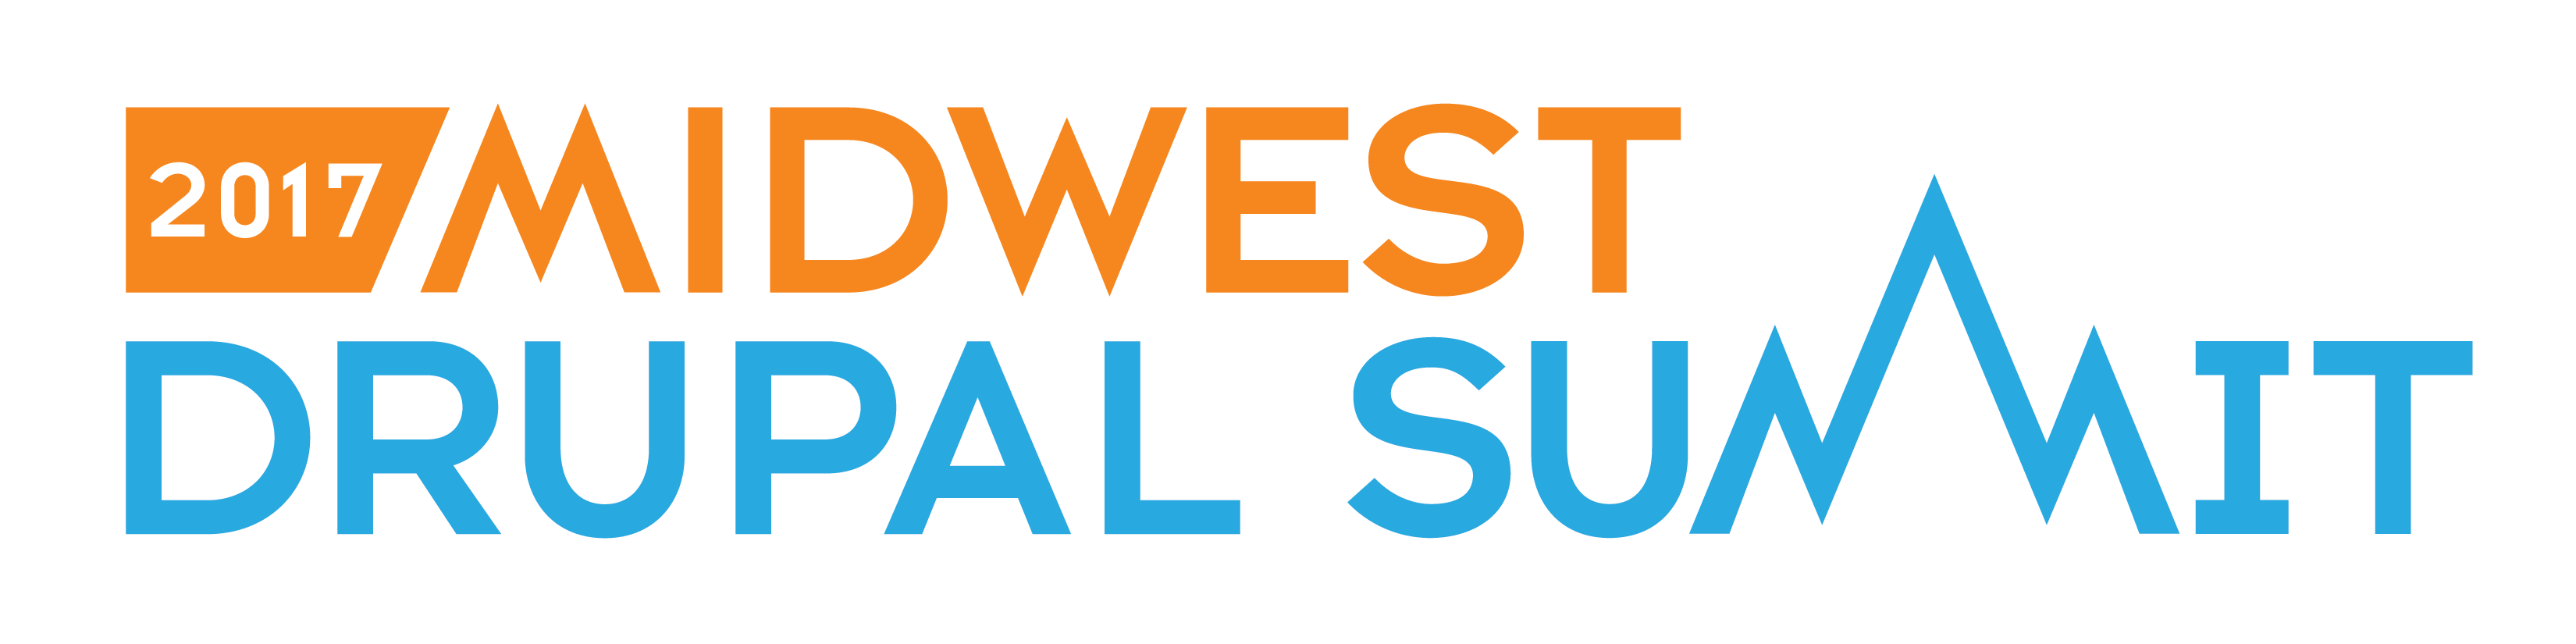 Midwest developer summit 2017 08 11 2017 08 13 register now make your plans to join us for the drupal midwest developer summit august 11 13 on the university of michigan campus in ann arbor mi xflitez Gallery